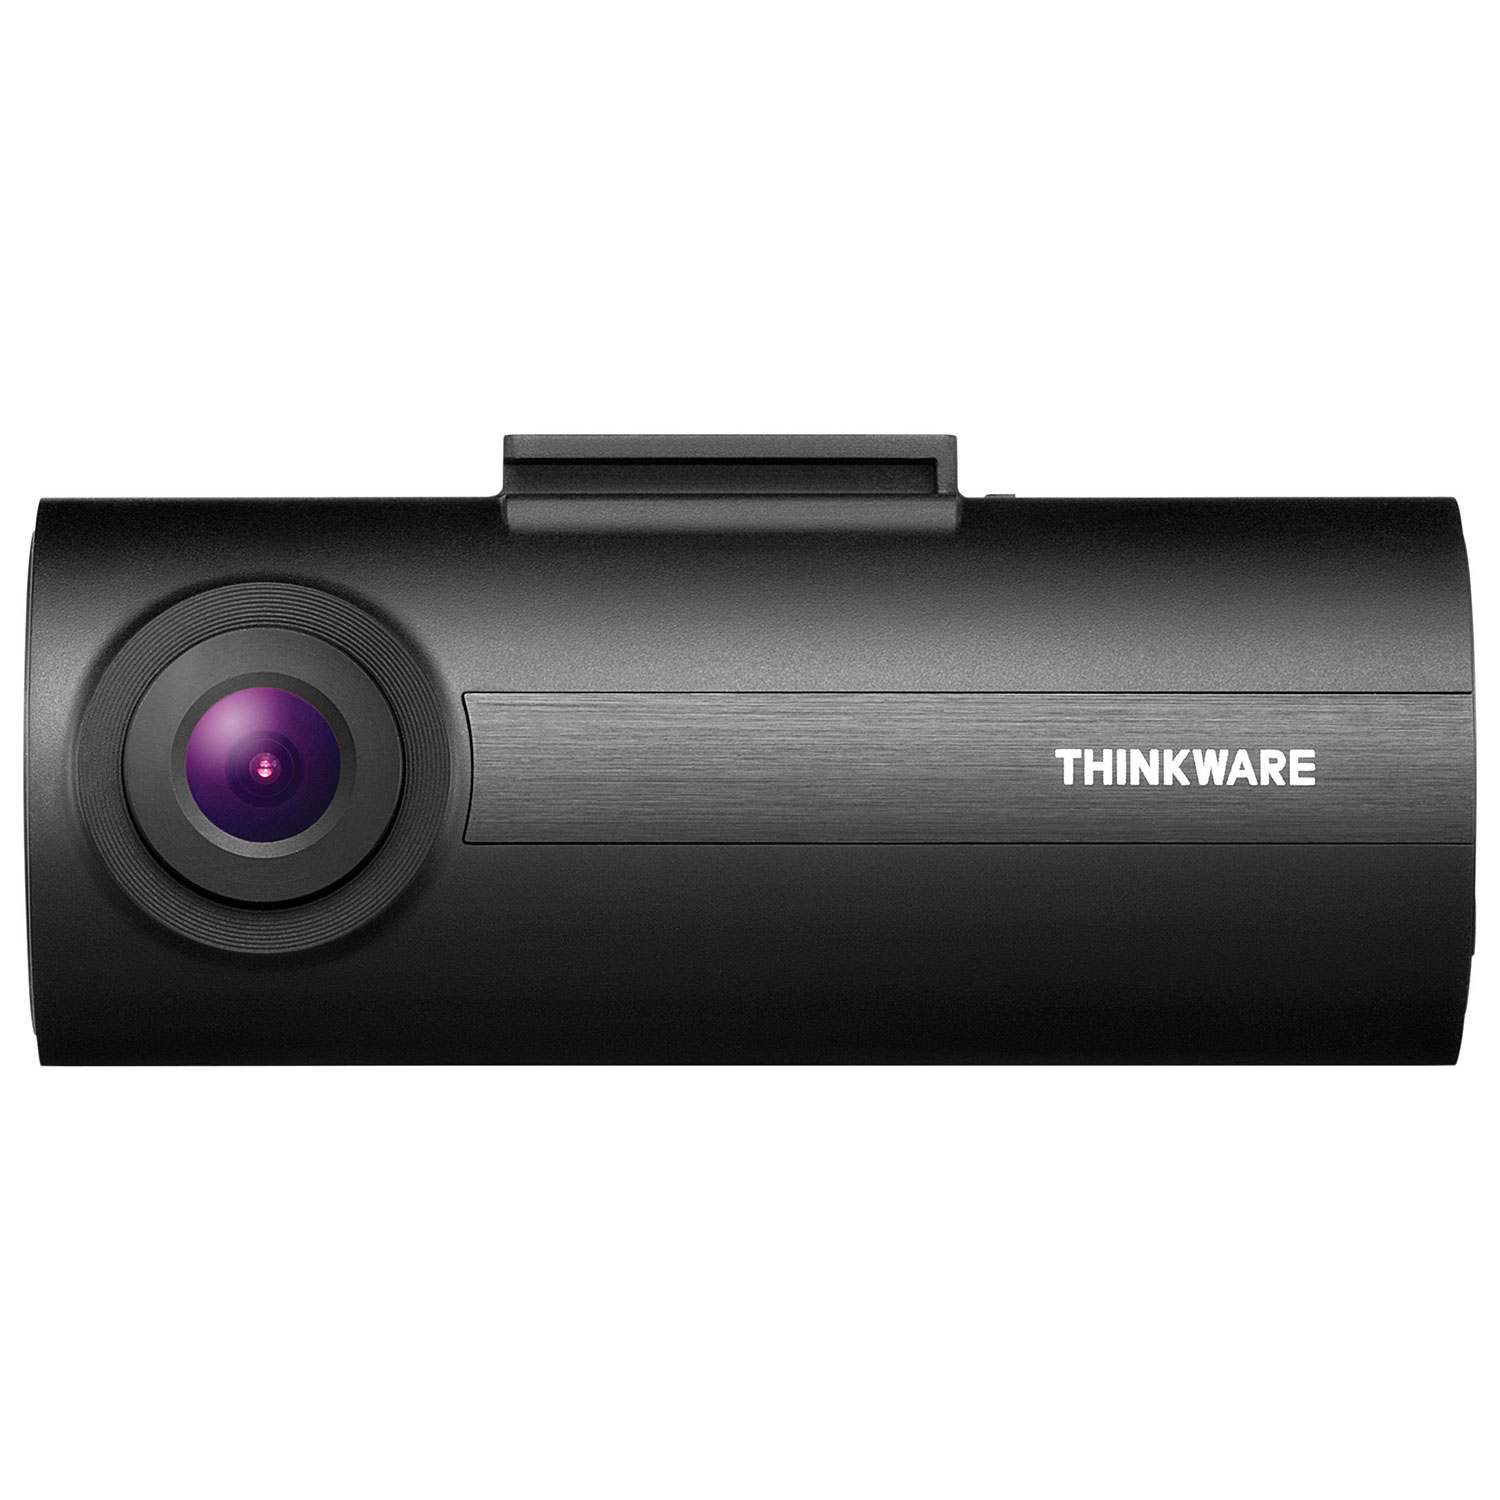 THINKWARE DASH CAM F50 1080p Full HD 30fps รุ่นคุ้มค่า